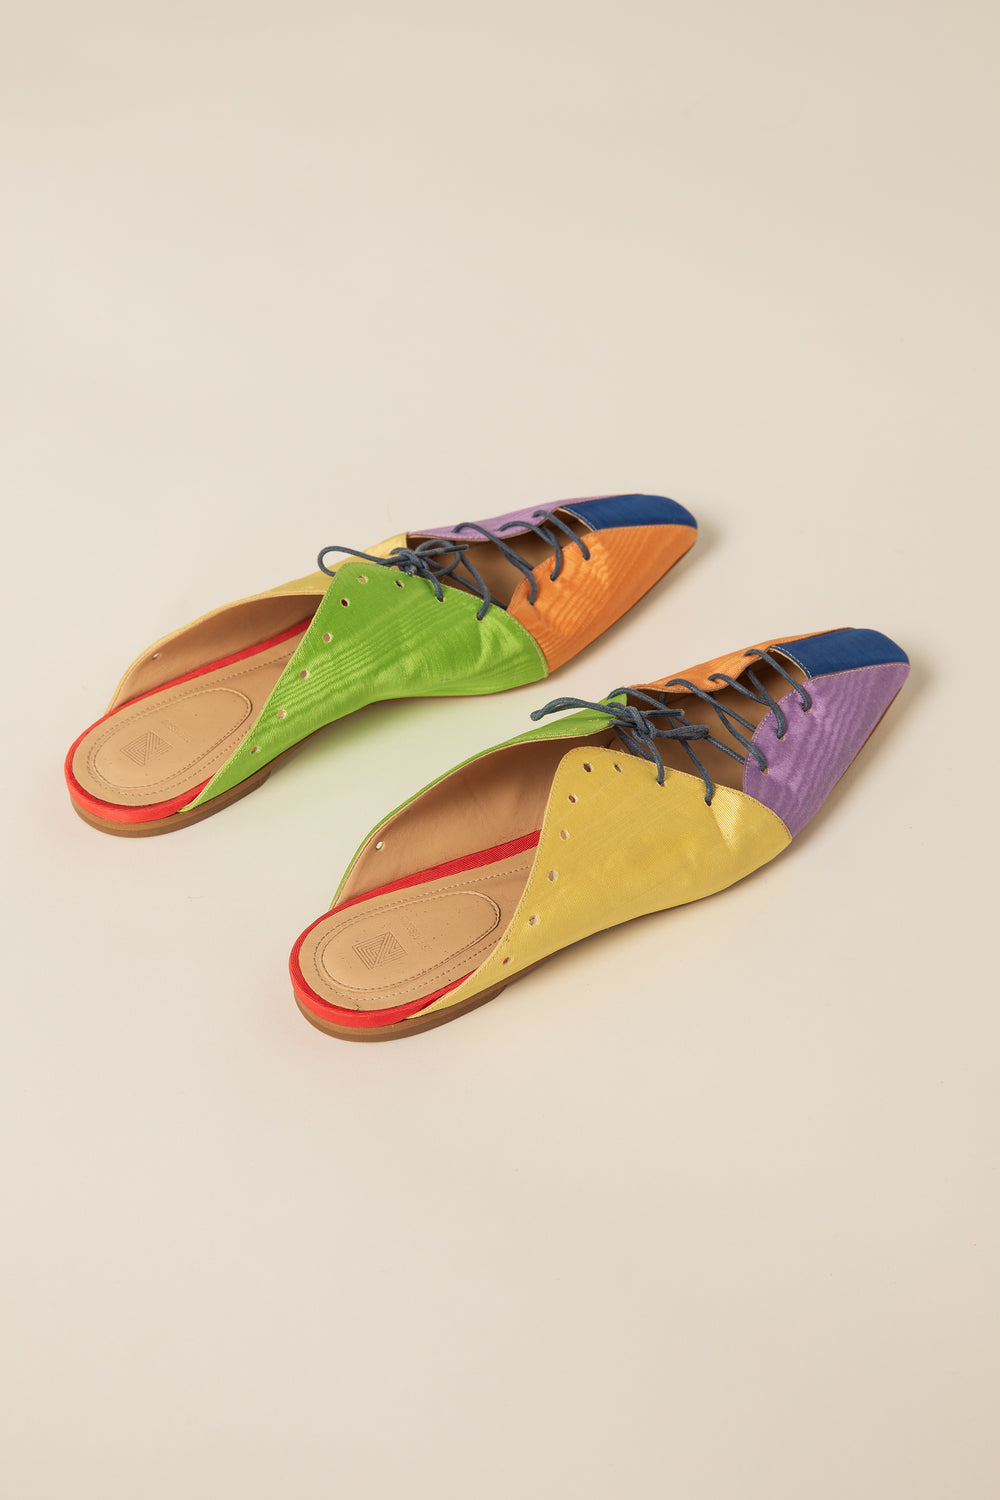 Rosie Assoulin Fall 2019 Double Lace-Up Ballet Slide. Multicolored pointed slide. Adjustable front laces. Panel cutout. Rainbow. 100% Viscose. Sizes 35 - 41.